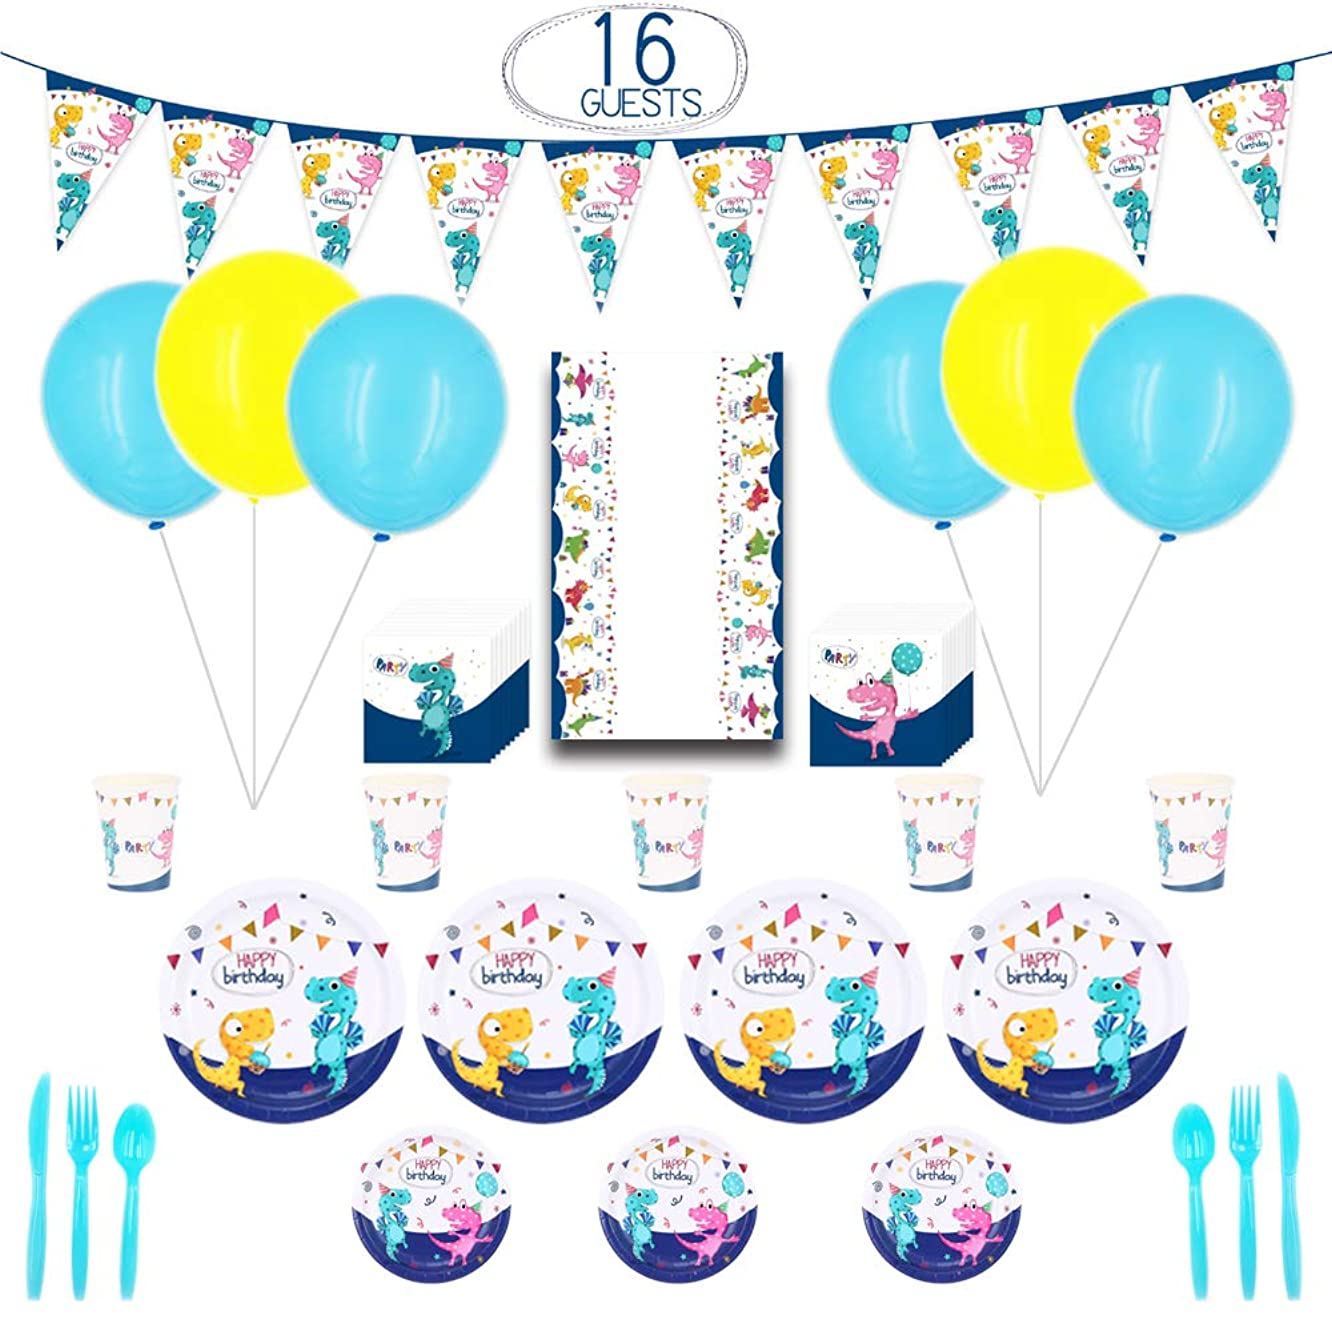 Tinfun Dinosaur Party Supplies Kit – 148 pcs with Banner,Balloon,Plates,Cups,Napkins,Table Cover,Tableware and Ribbons for Kids' Birthday Party Decoration,Serves 16